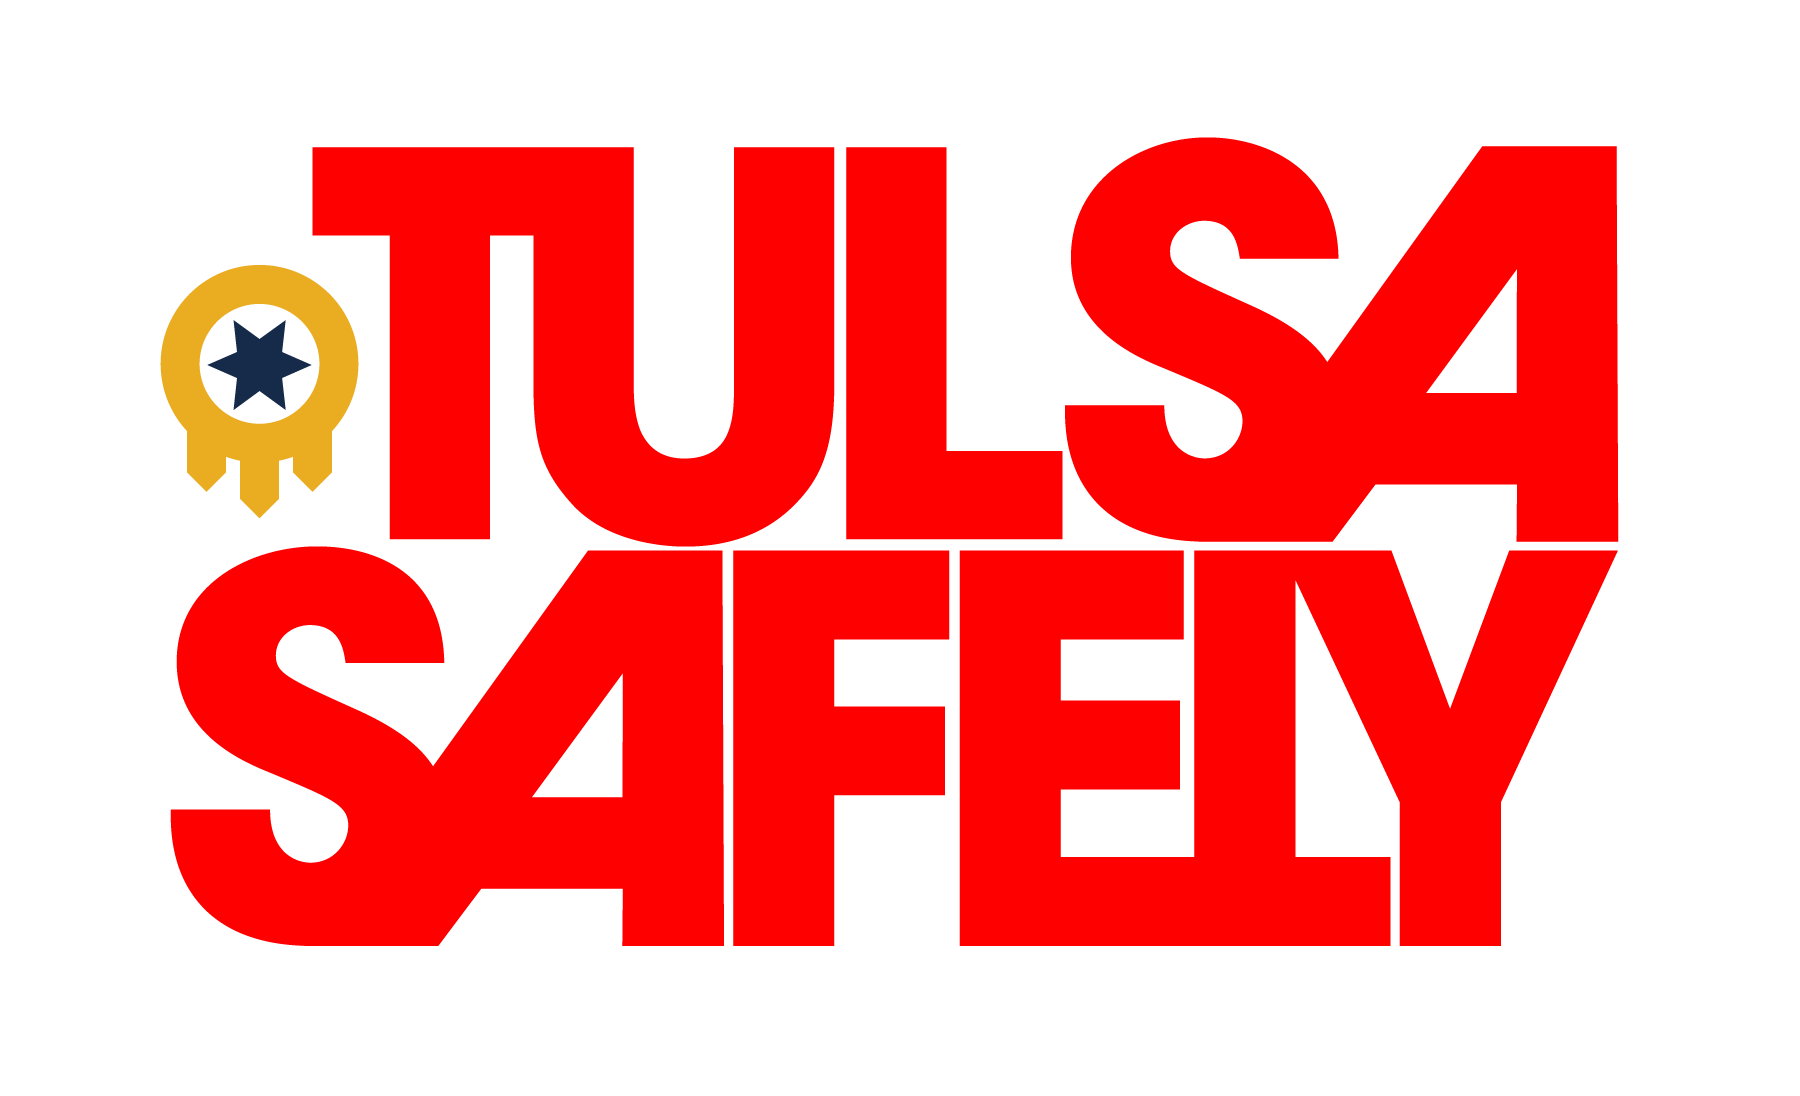 Tulsa Safely logo